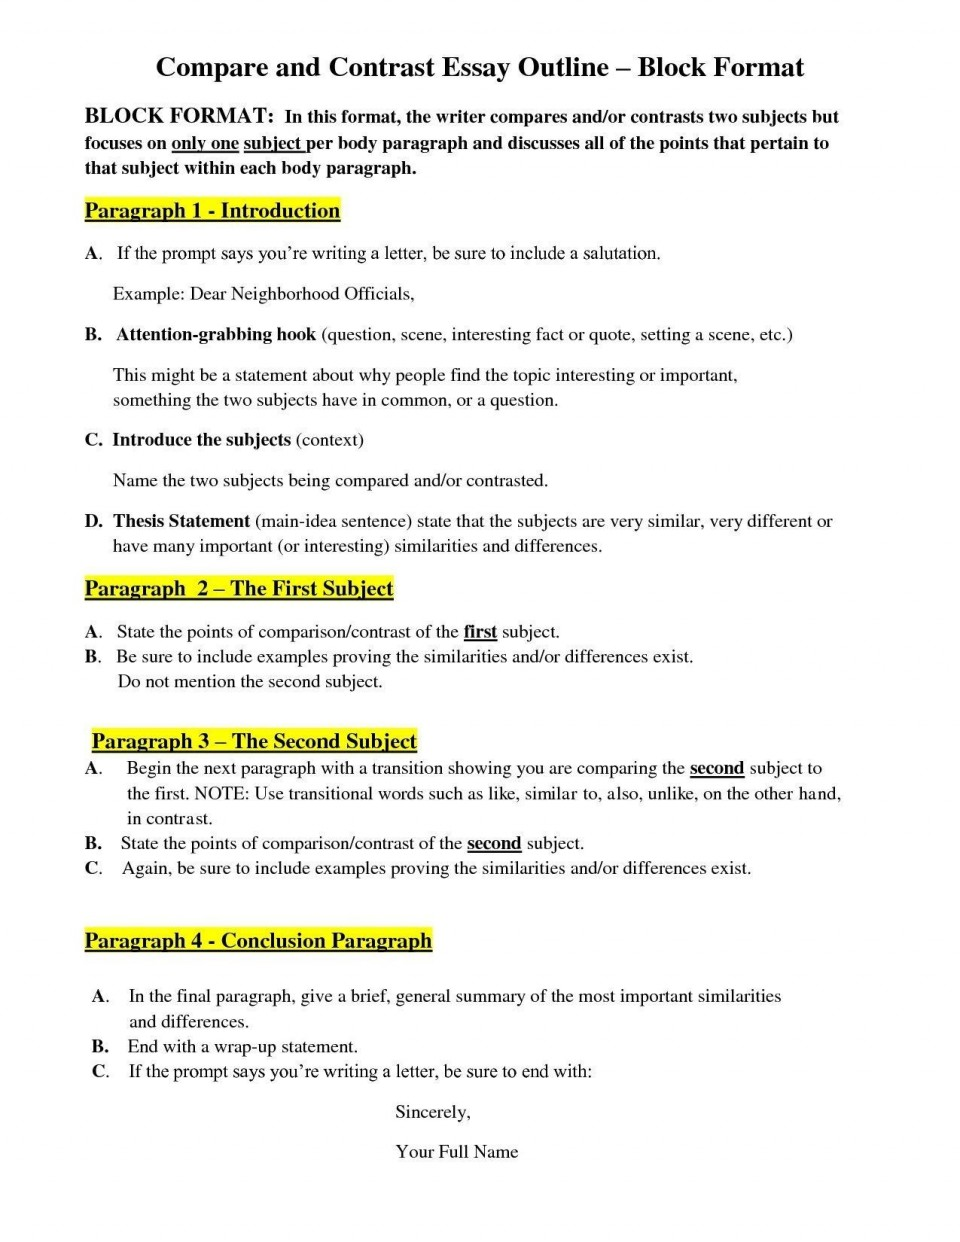 014 Essay Examplempare Andntrastmparison Best Examples Of Scenario In 6th Grade An Goo 3rd Food 5th Middle School Block Format Pdf High 4th Vs Striking Compare And Contrast Example Comparison Free For 960